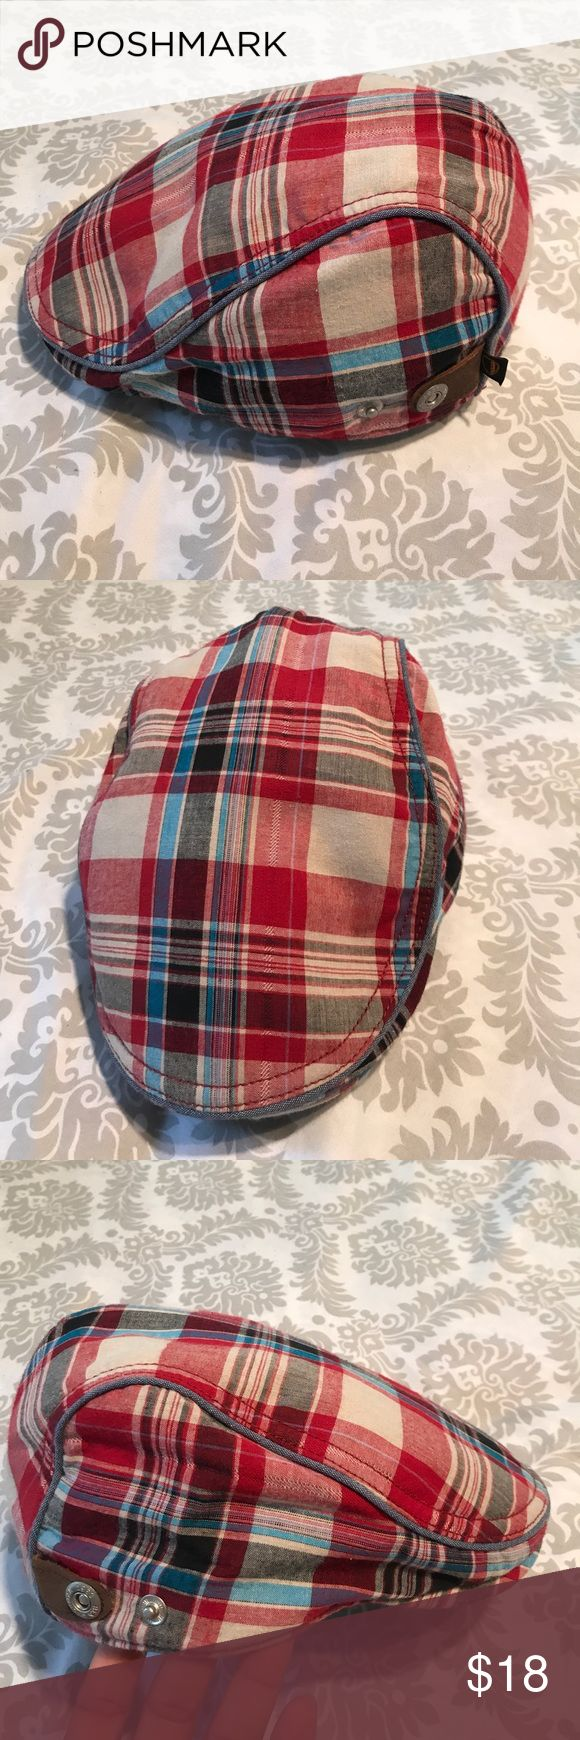 Ben Sherman men's driver cap. EUC. Size S/M Ben Sherman men's driver cap. EUC. Size S/M. Multiple colors. 100% Cotton Ben Sherman Accessories Hats